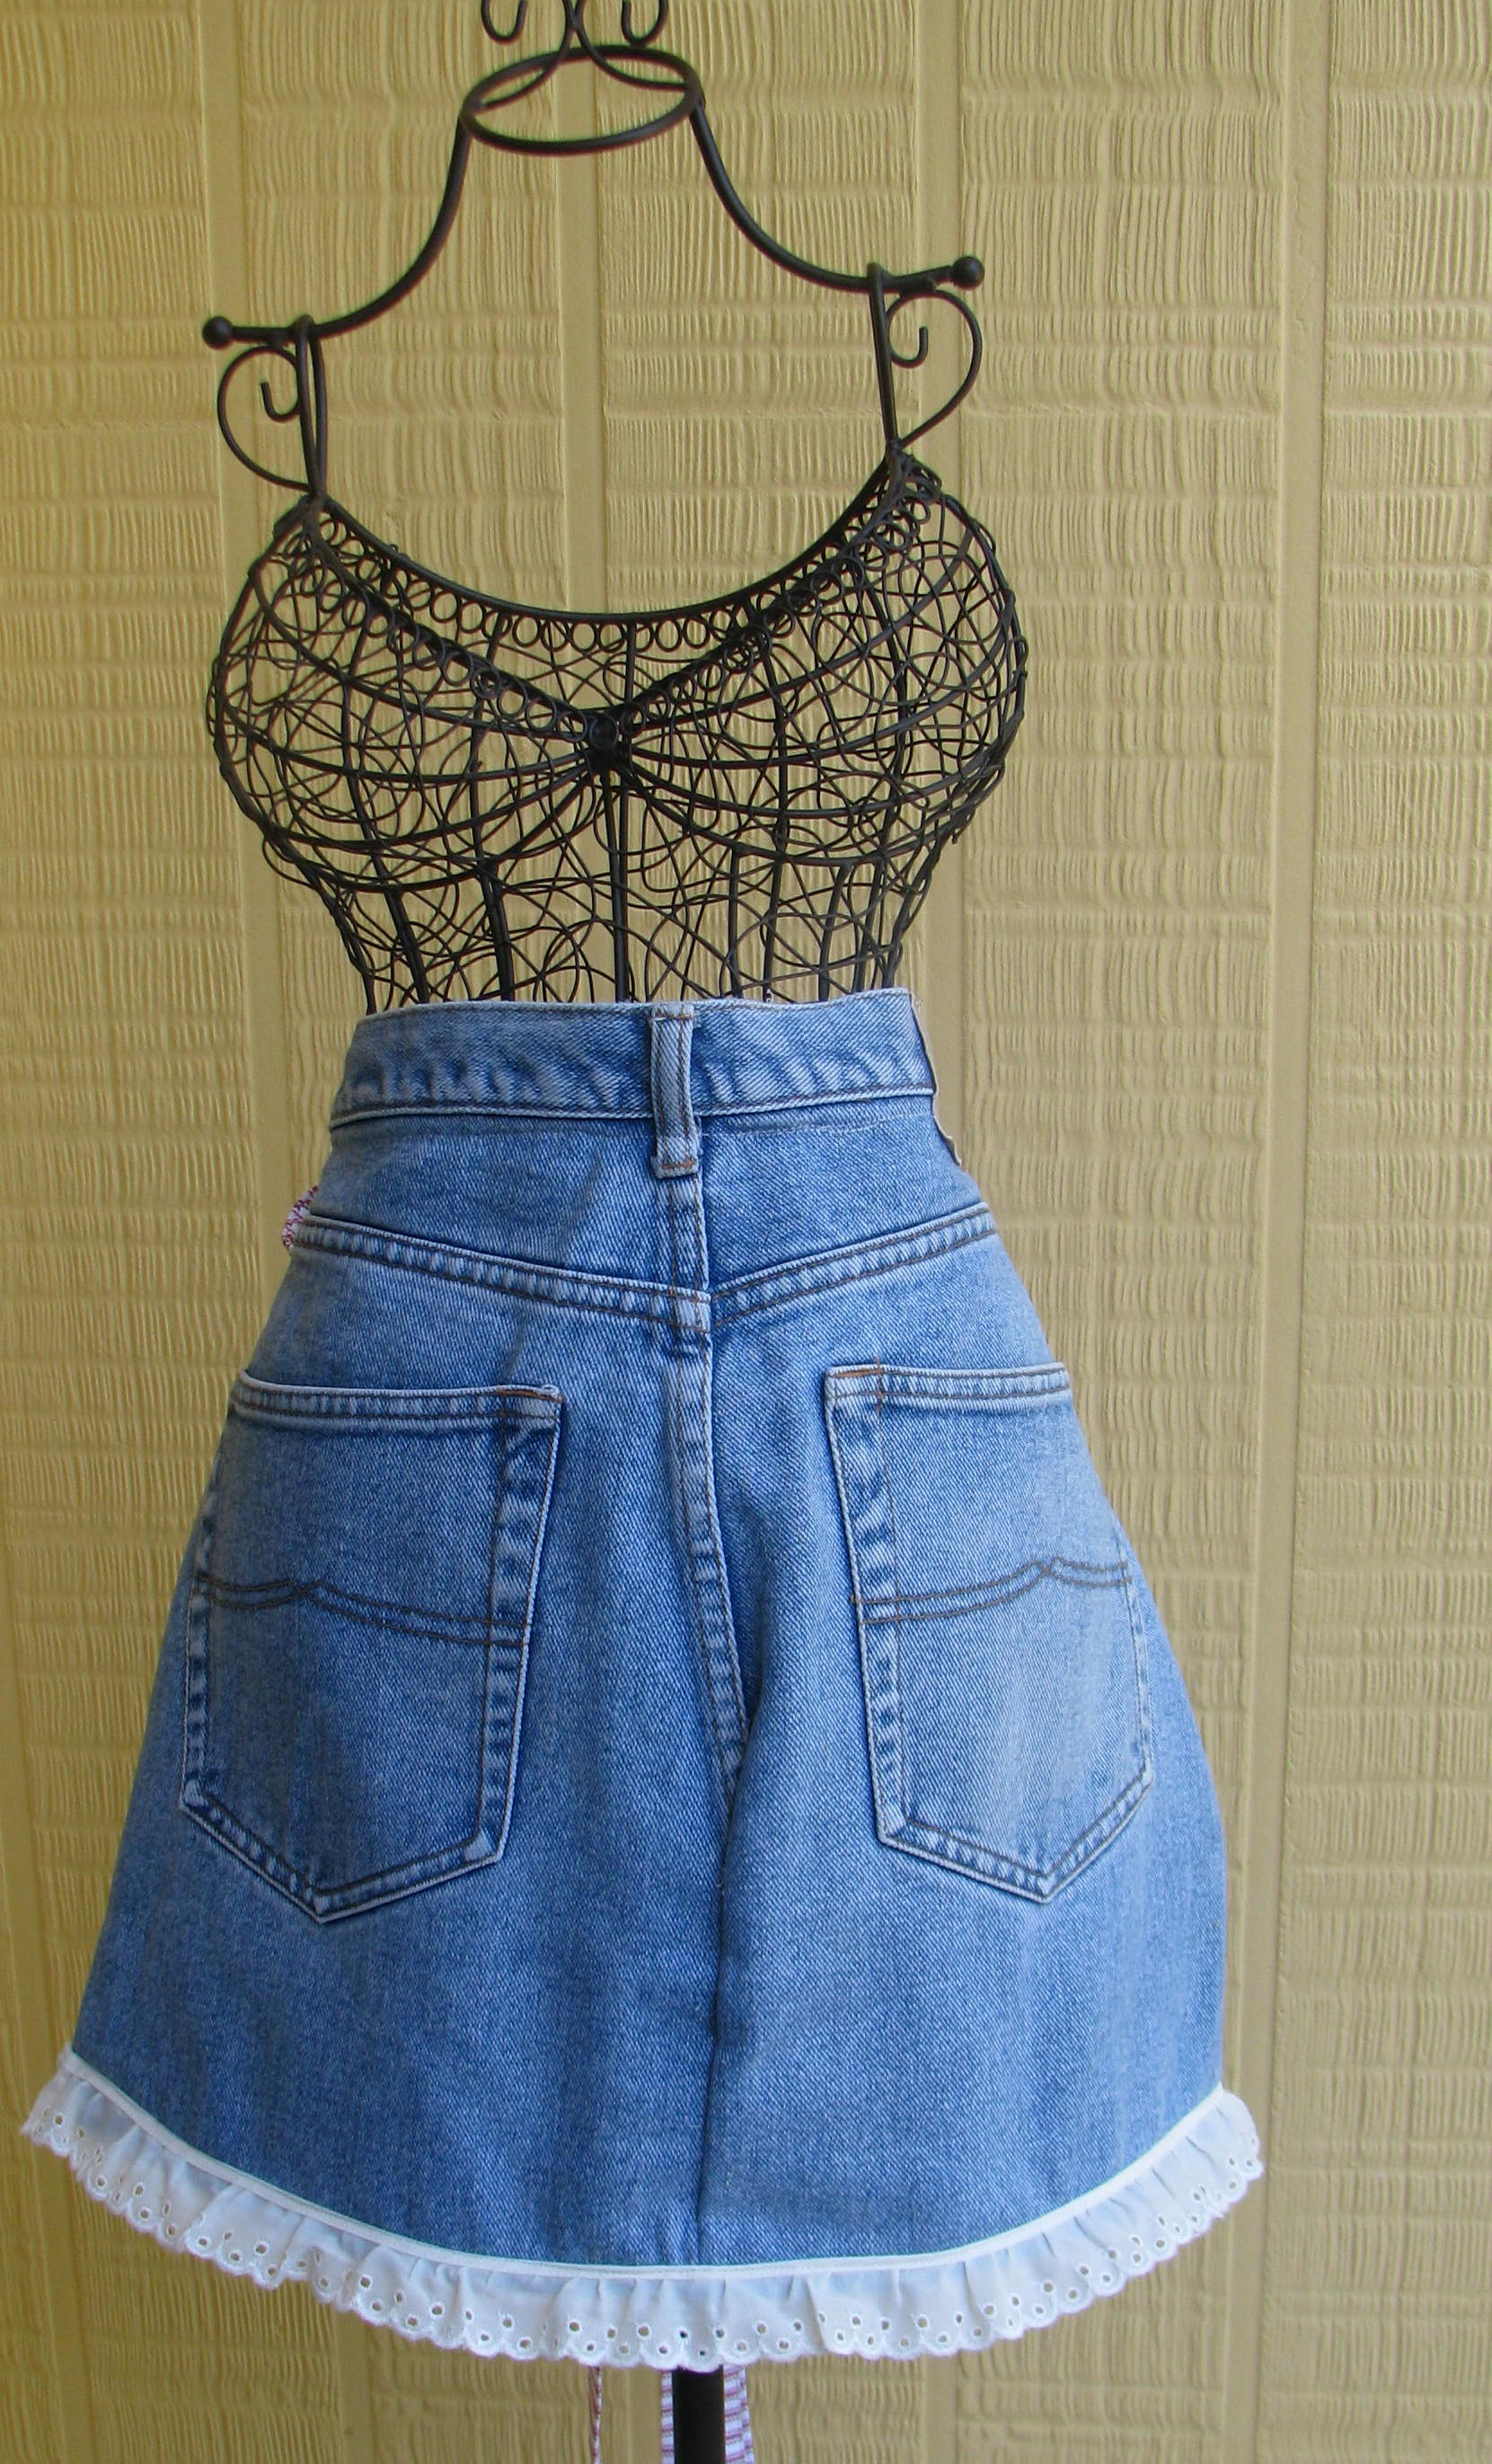 Recycled Jeans Made Into Aprons String Amp Scissors